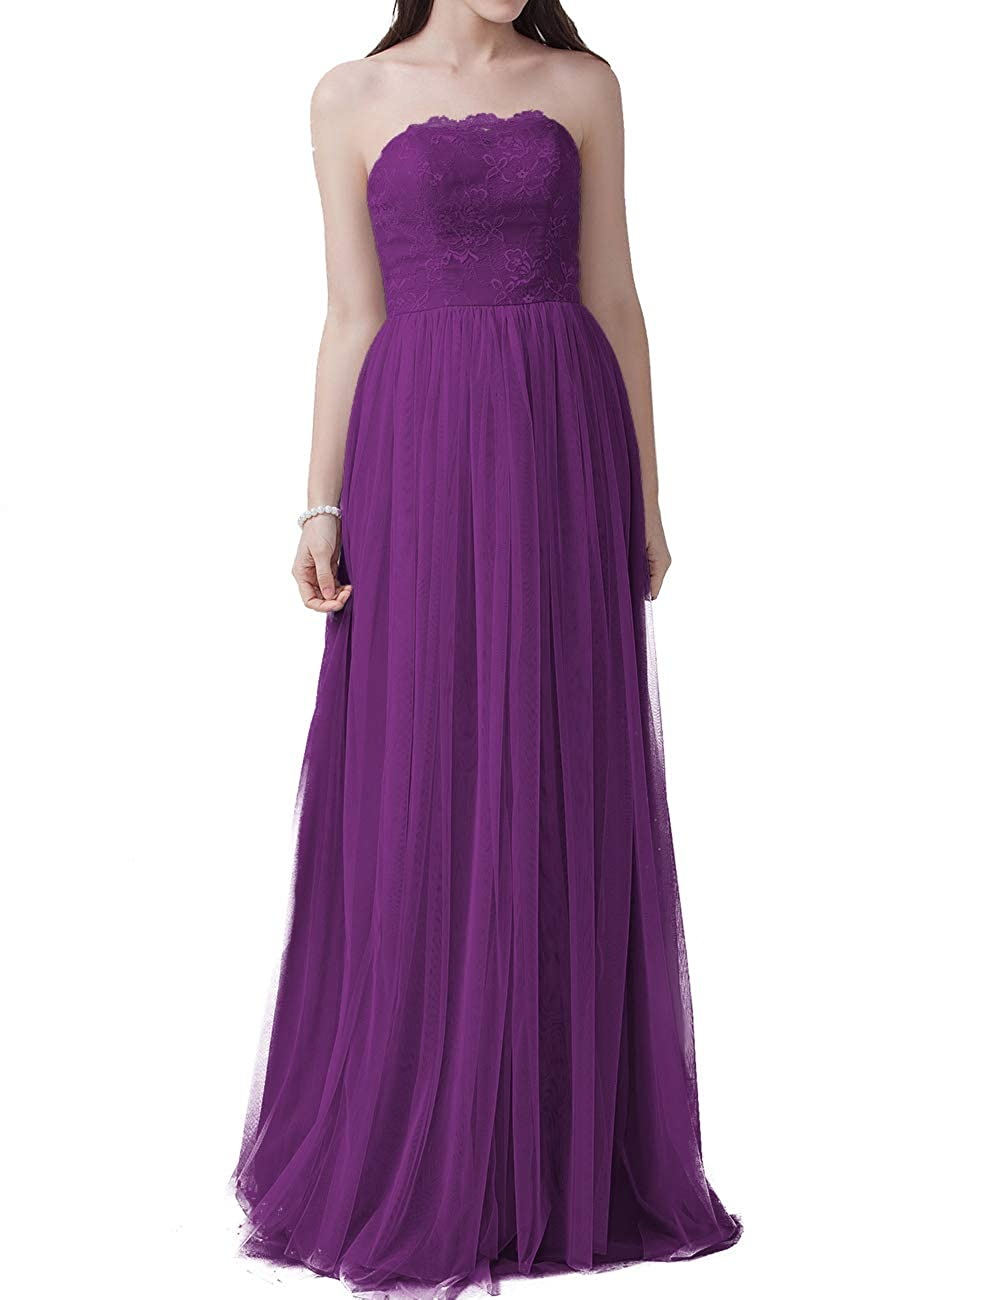 Purple EDressy Congreenible Bridesmaid Dresses Long Tulle Prom Evening Gowns Wedding Party Dress Sleeveless